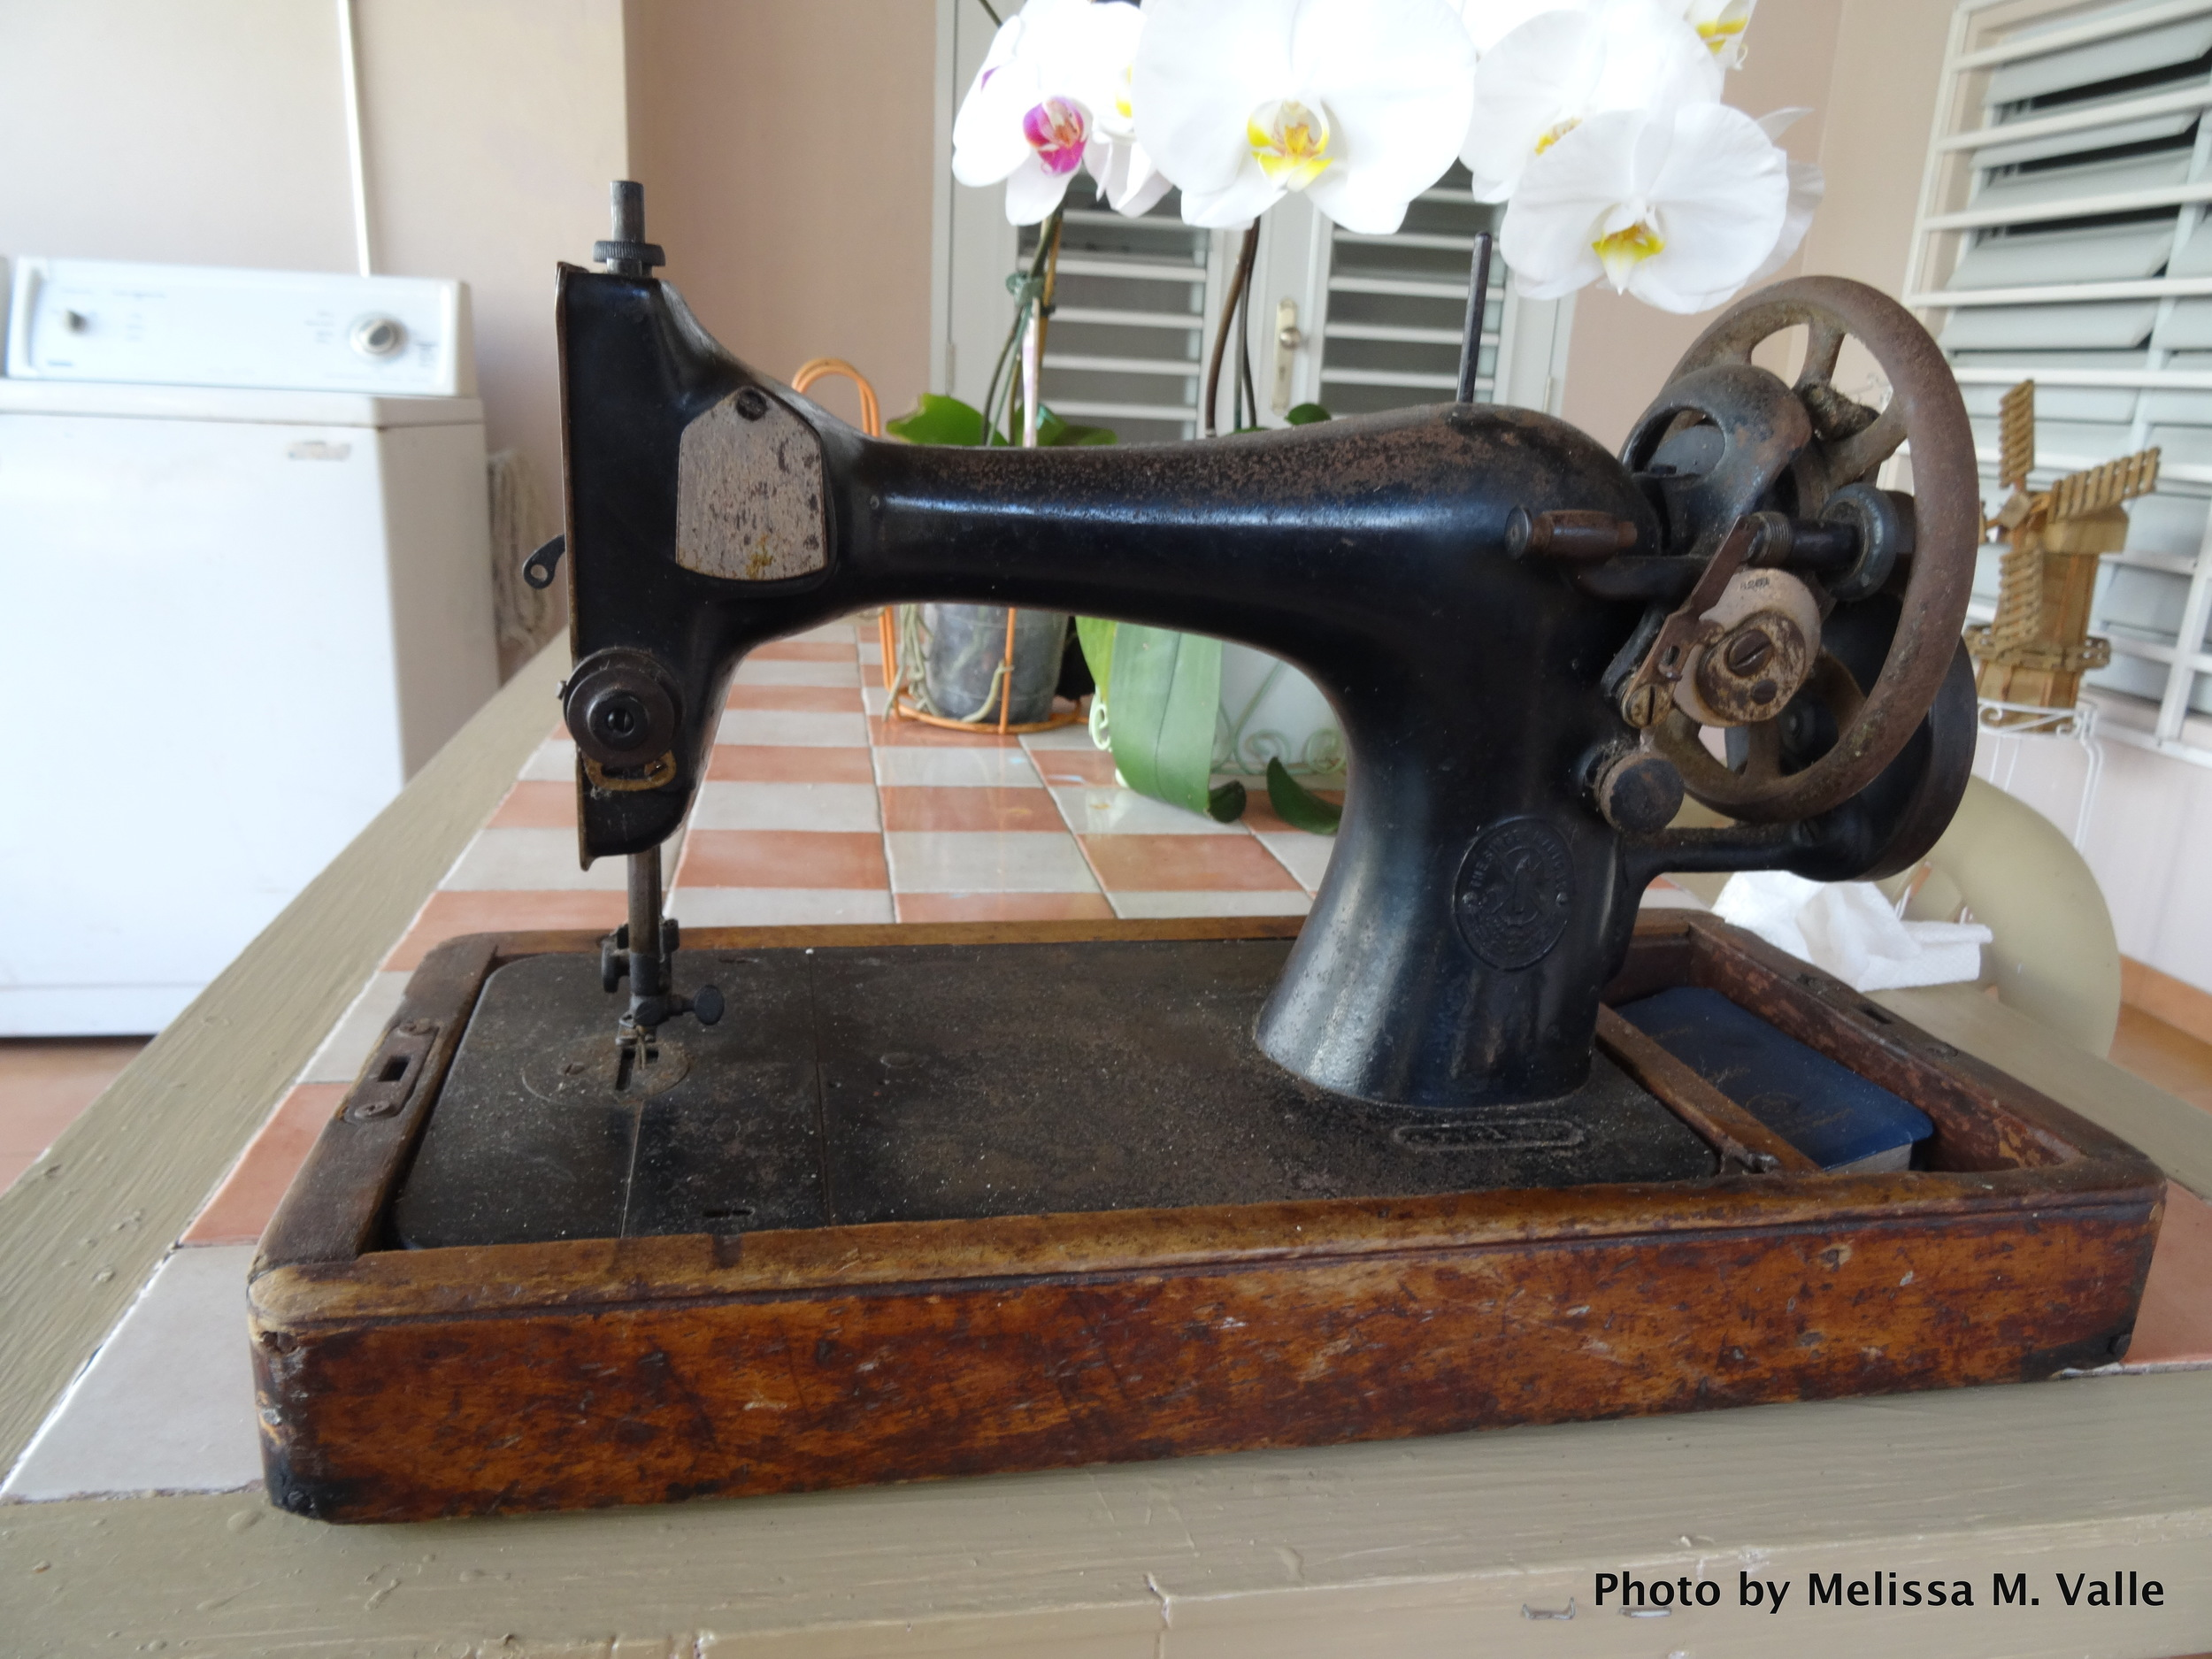 My great-grandmother's Singer sewing machine